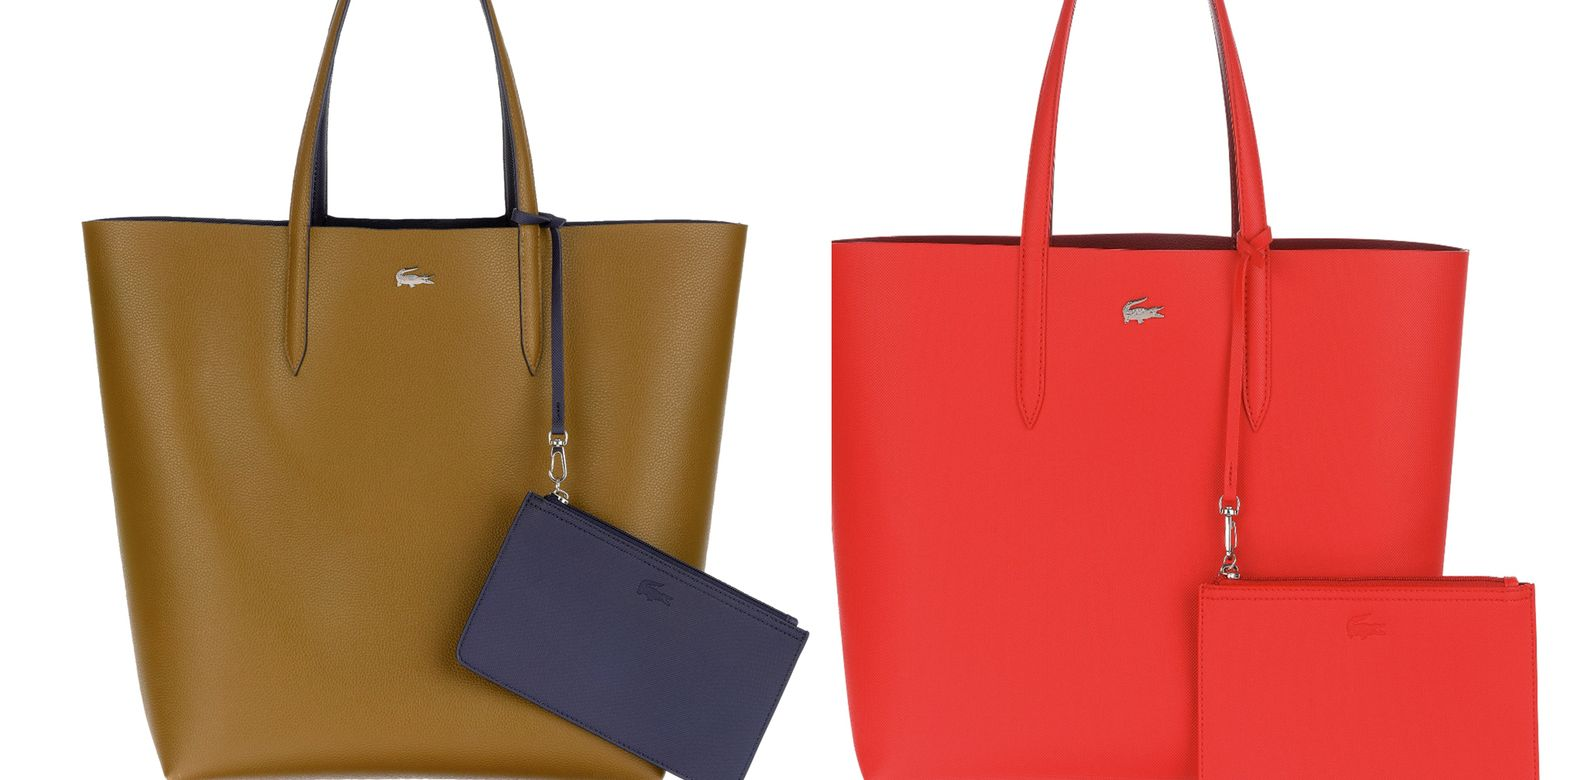 Shopping Bags, the Fall Winter Collection 2015-2016